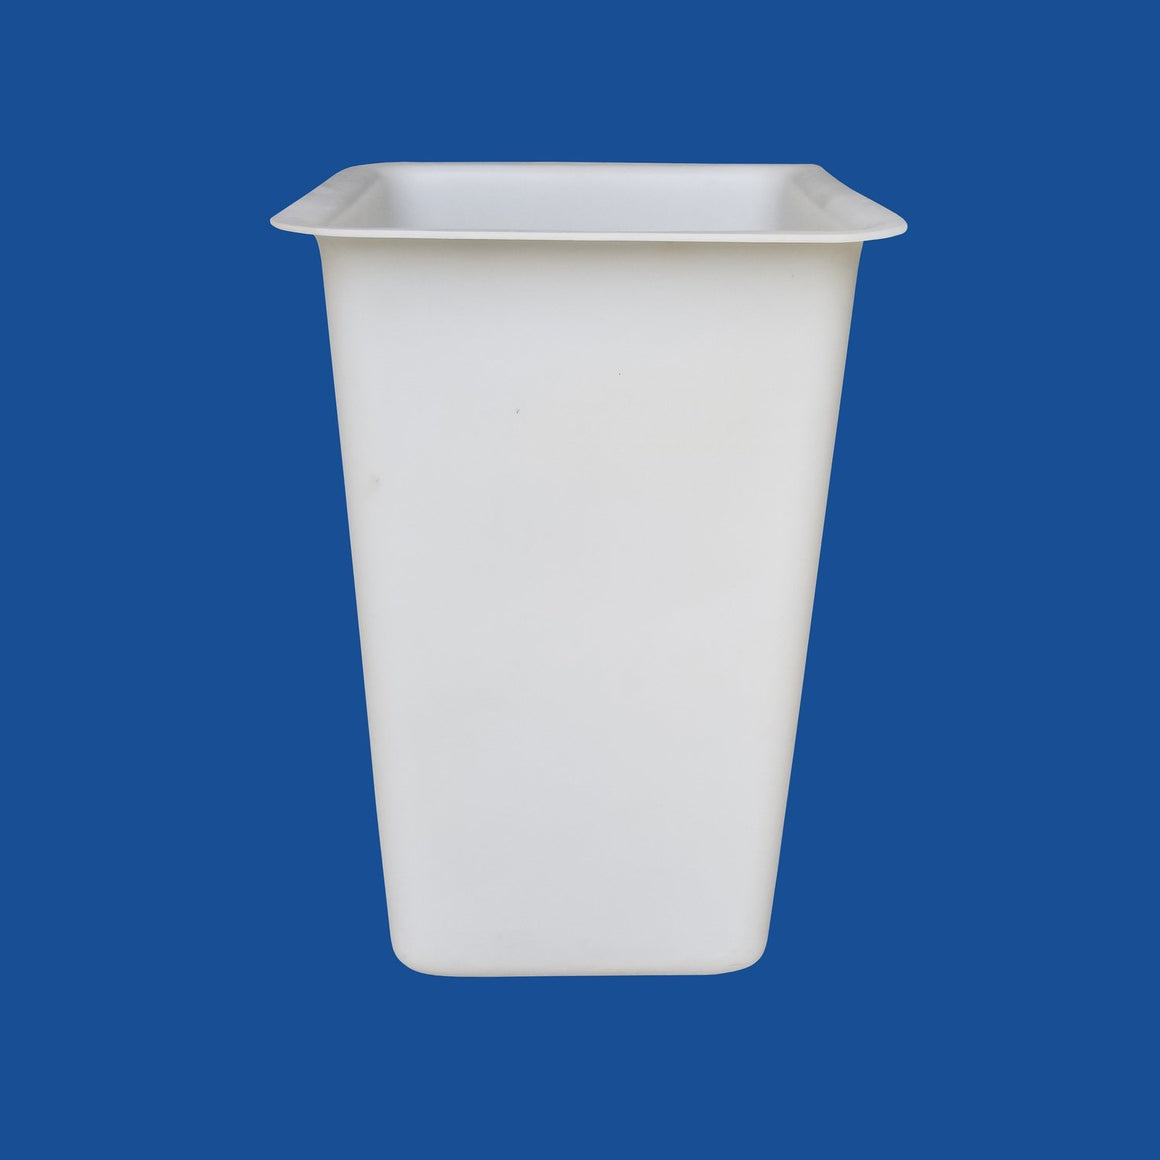 "Bucket Liner - 24"" x 24"" x 40"" - Single Man - (Nonskid) - Plastic Composites Co"